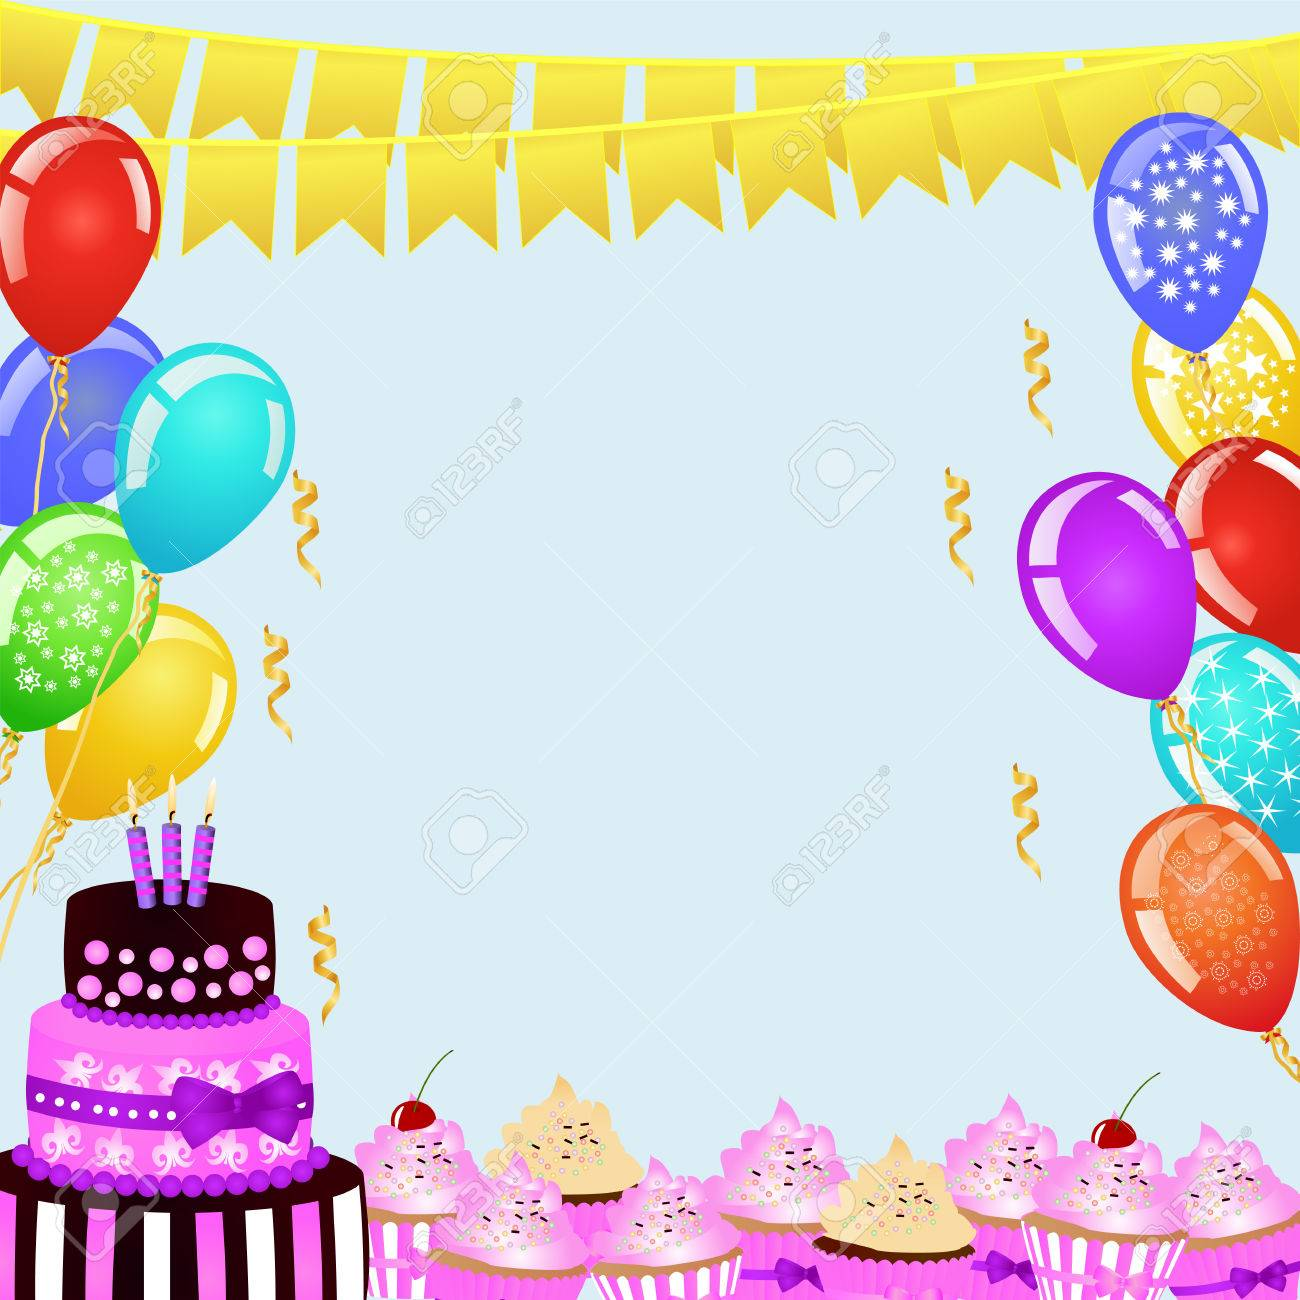 Birthday Party Background With Bunting Flags Balloons Birthday Royalty Free Cliparts Vectors And Stock Illustration Image 55410239